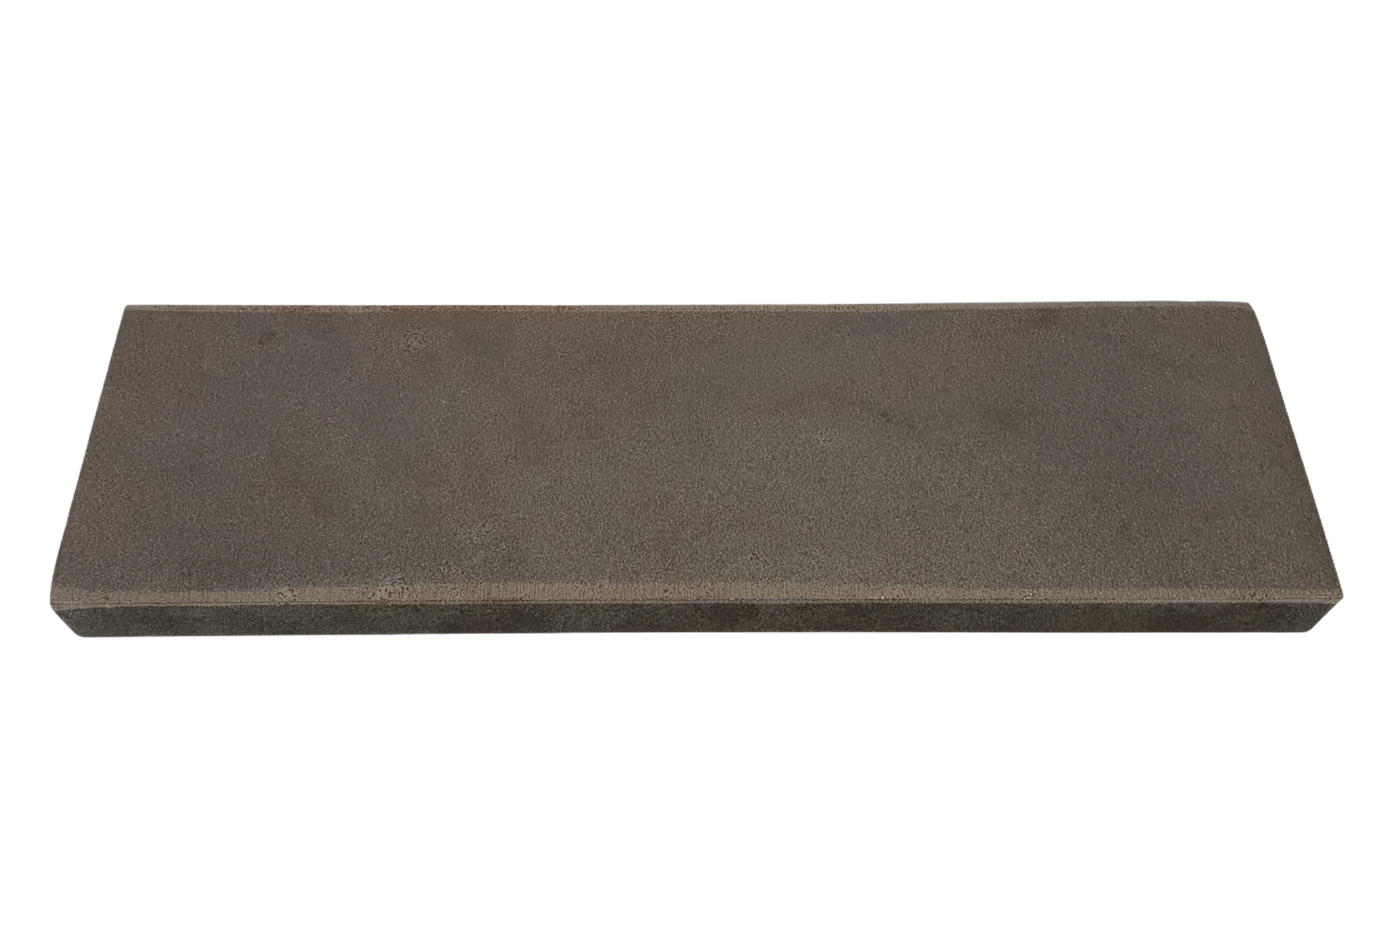 A upper baffle plate suitable for an Morso 04 stove.